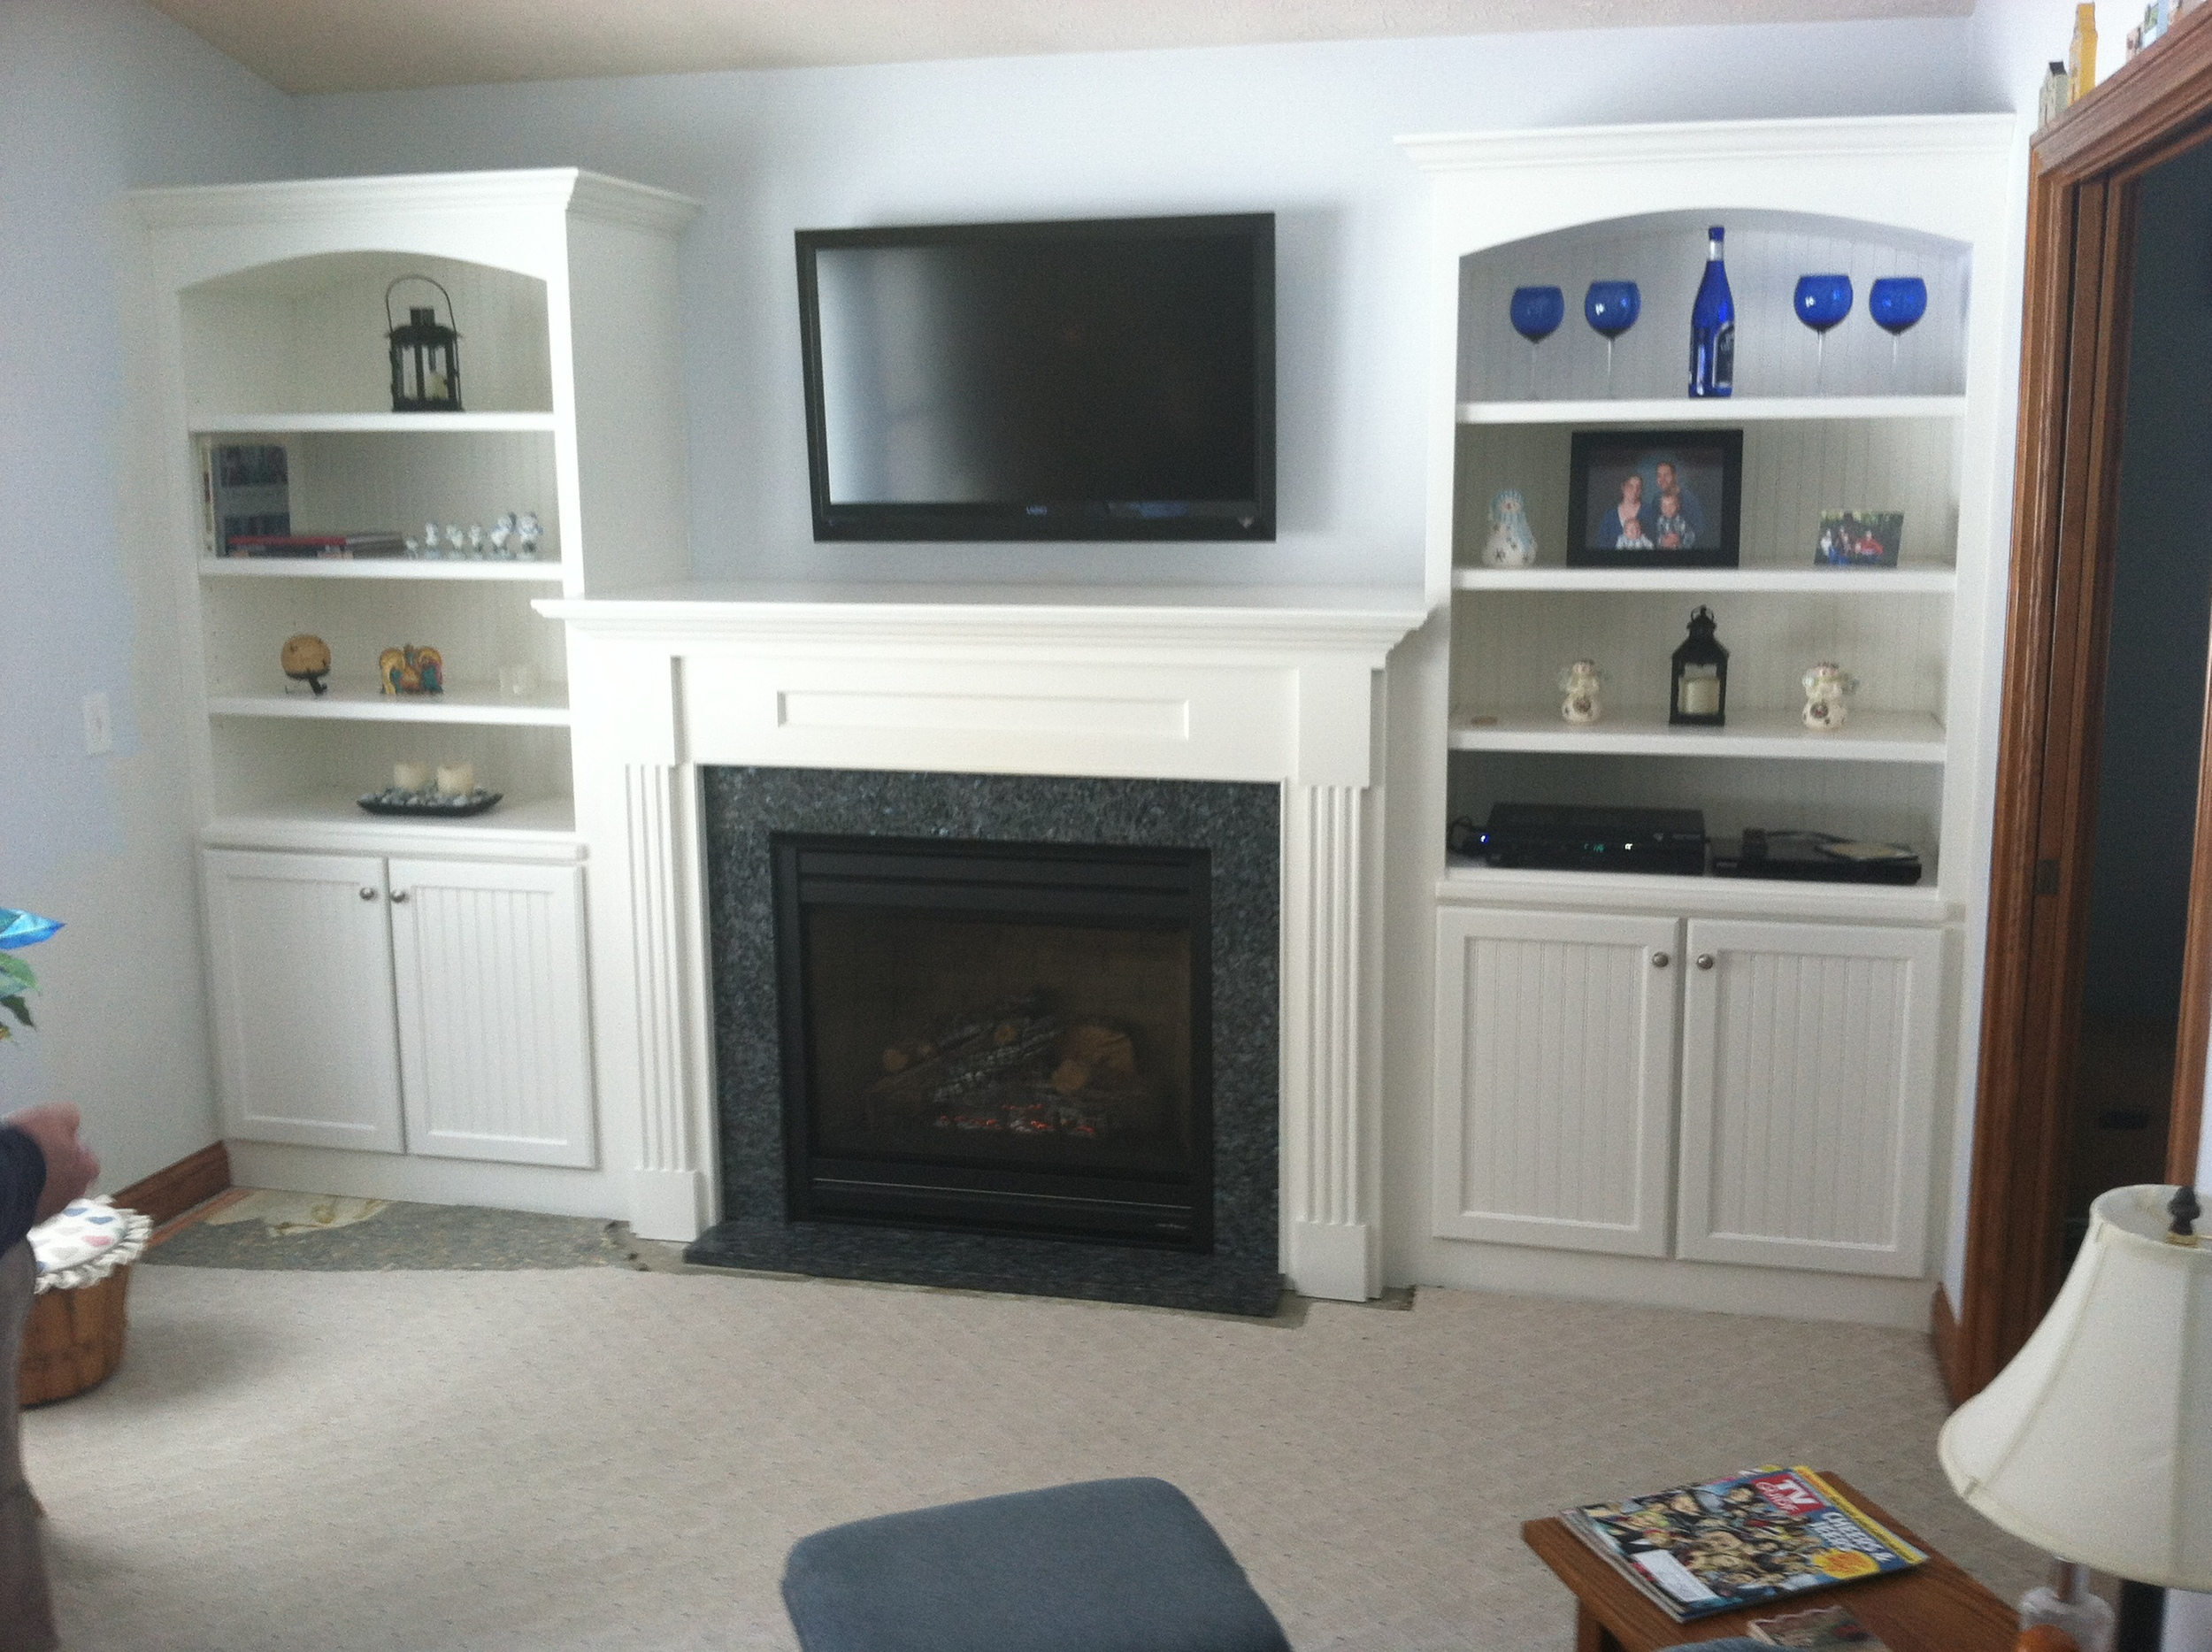 Custom Book Shelves and Direct Vent Fireplace Install